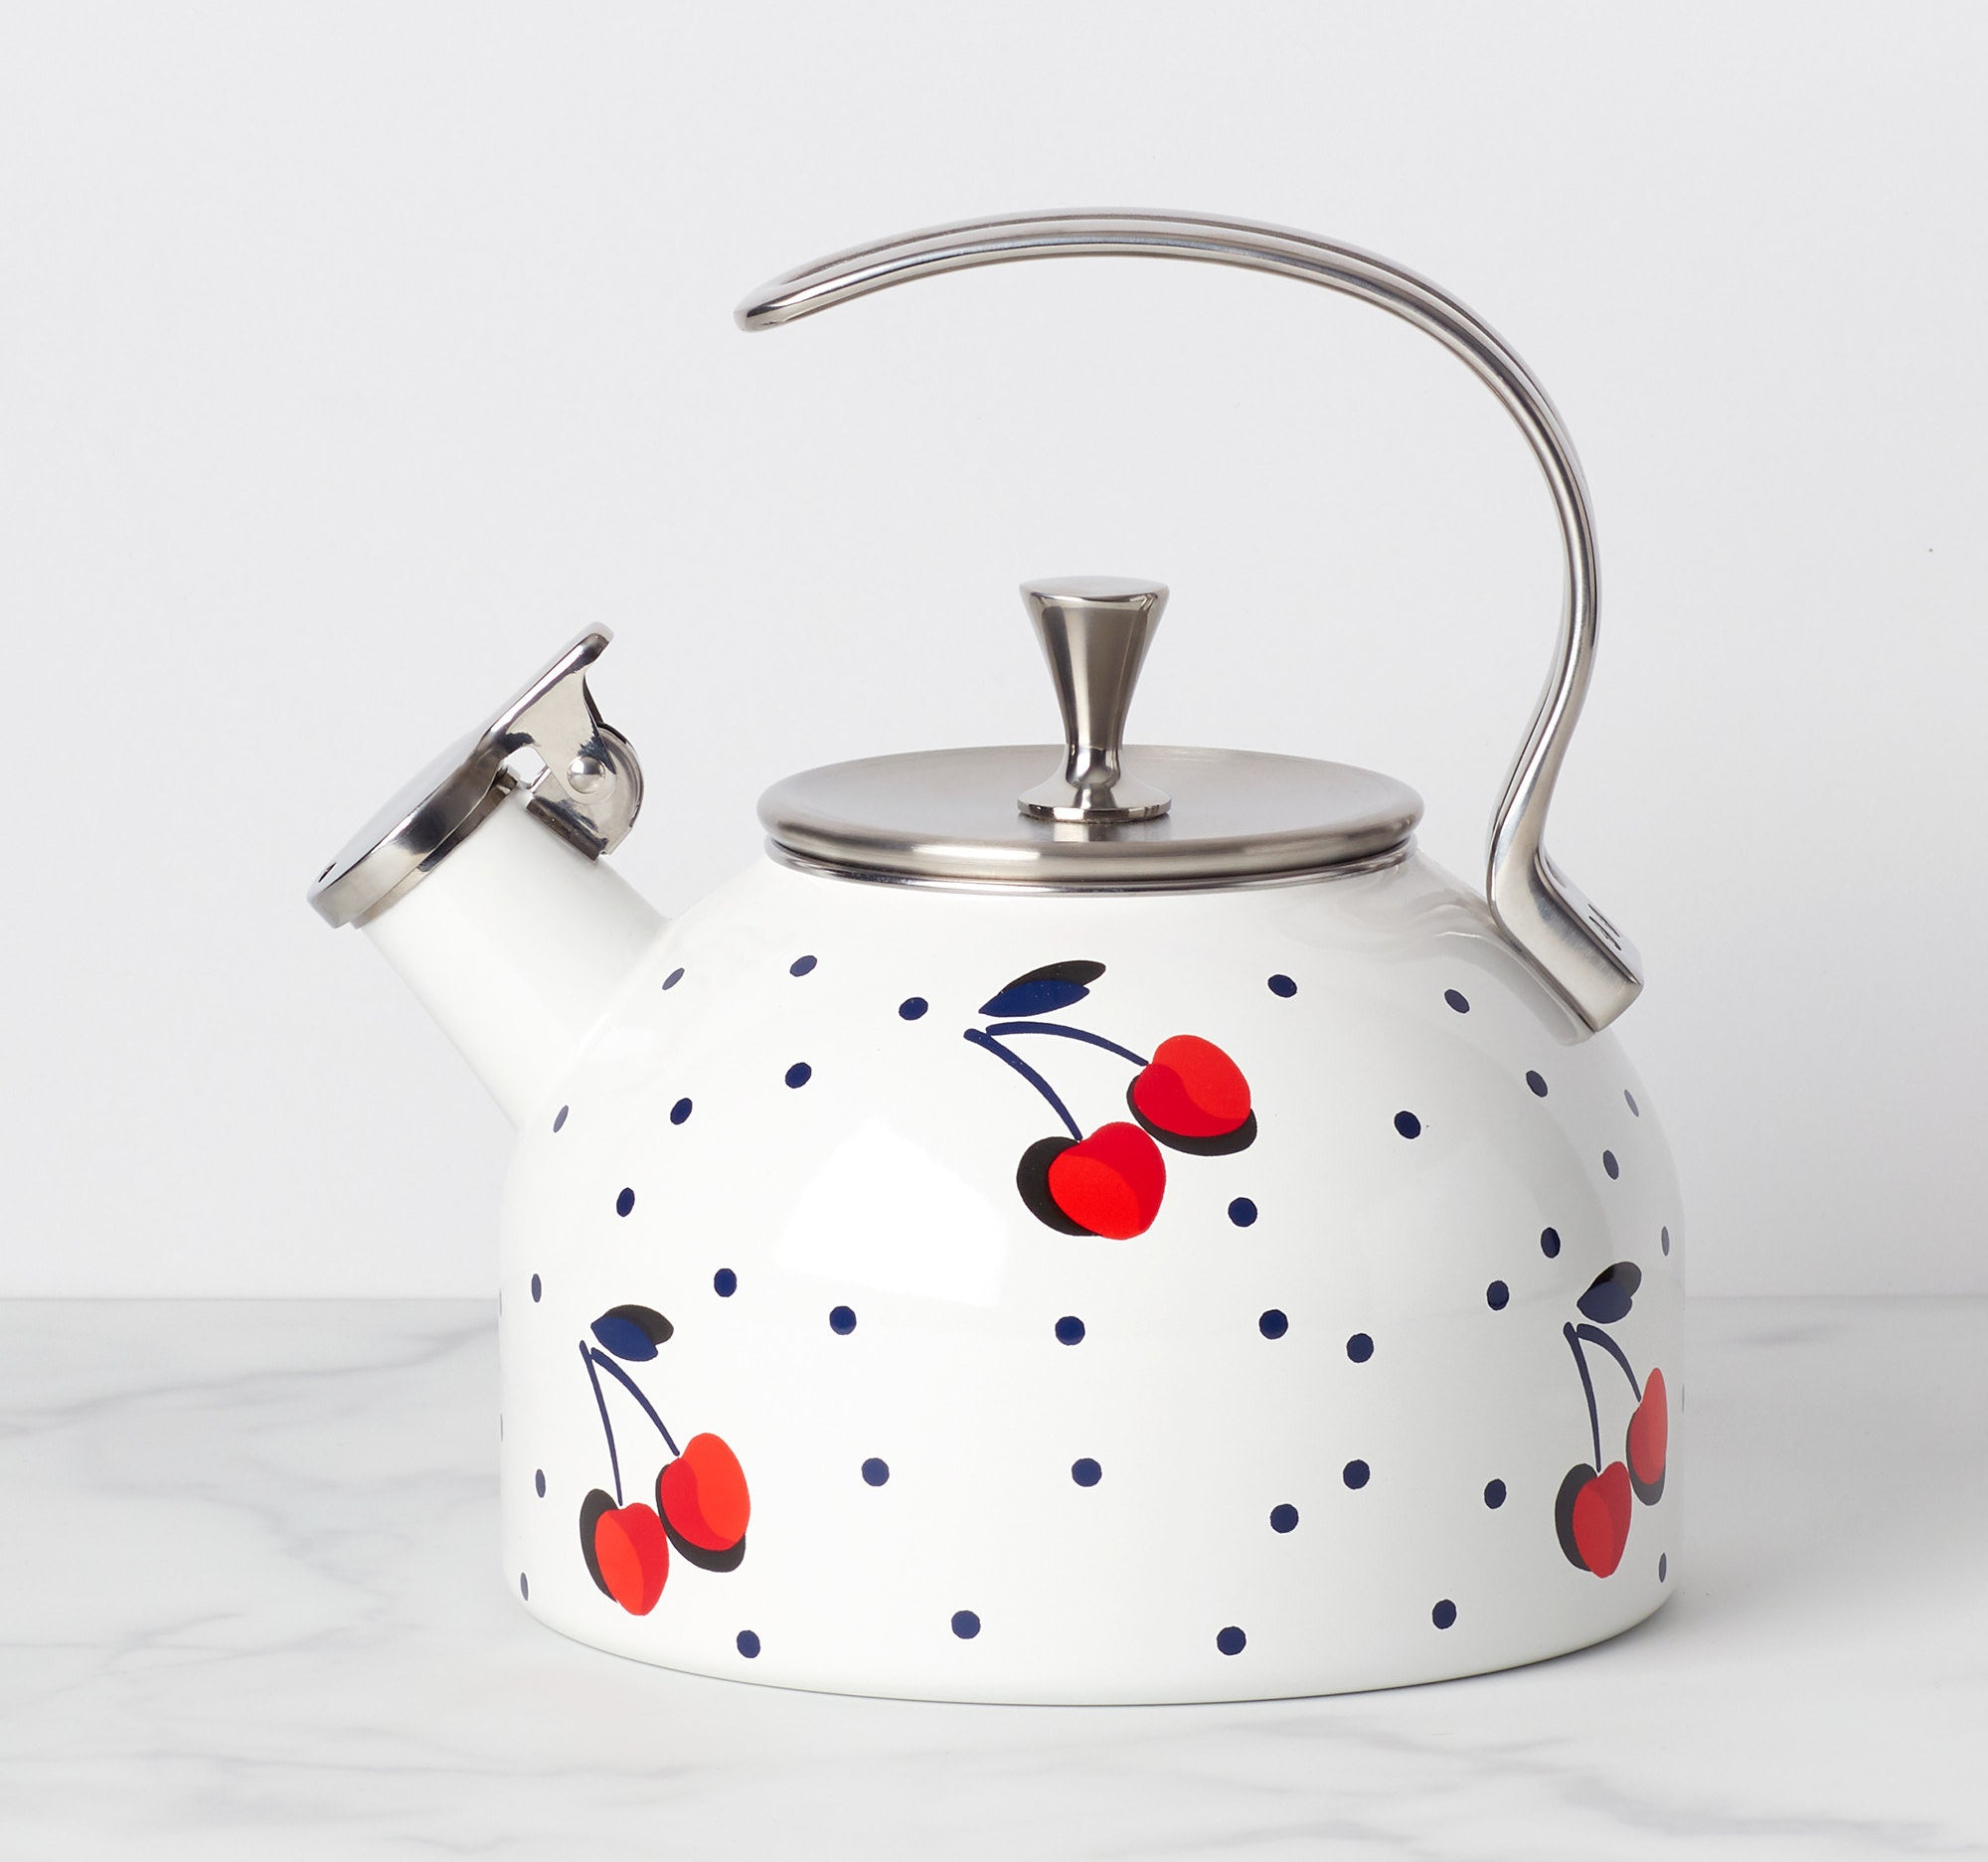 the tea kettle is white with cherries and black dots on it